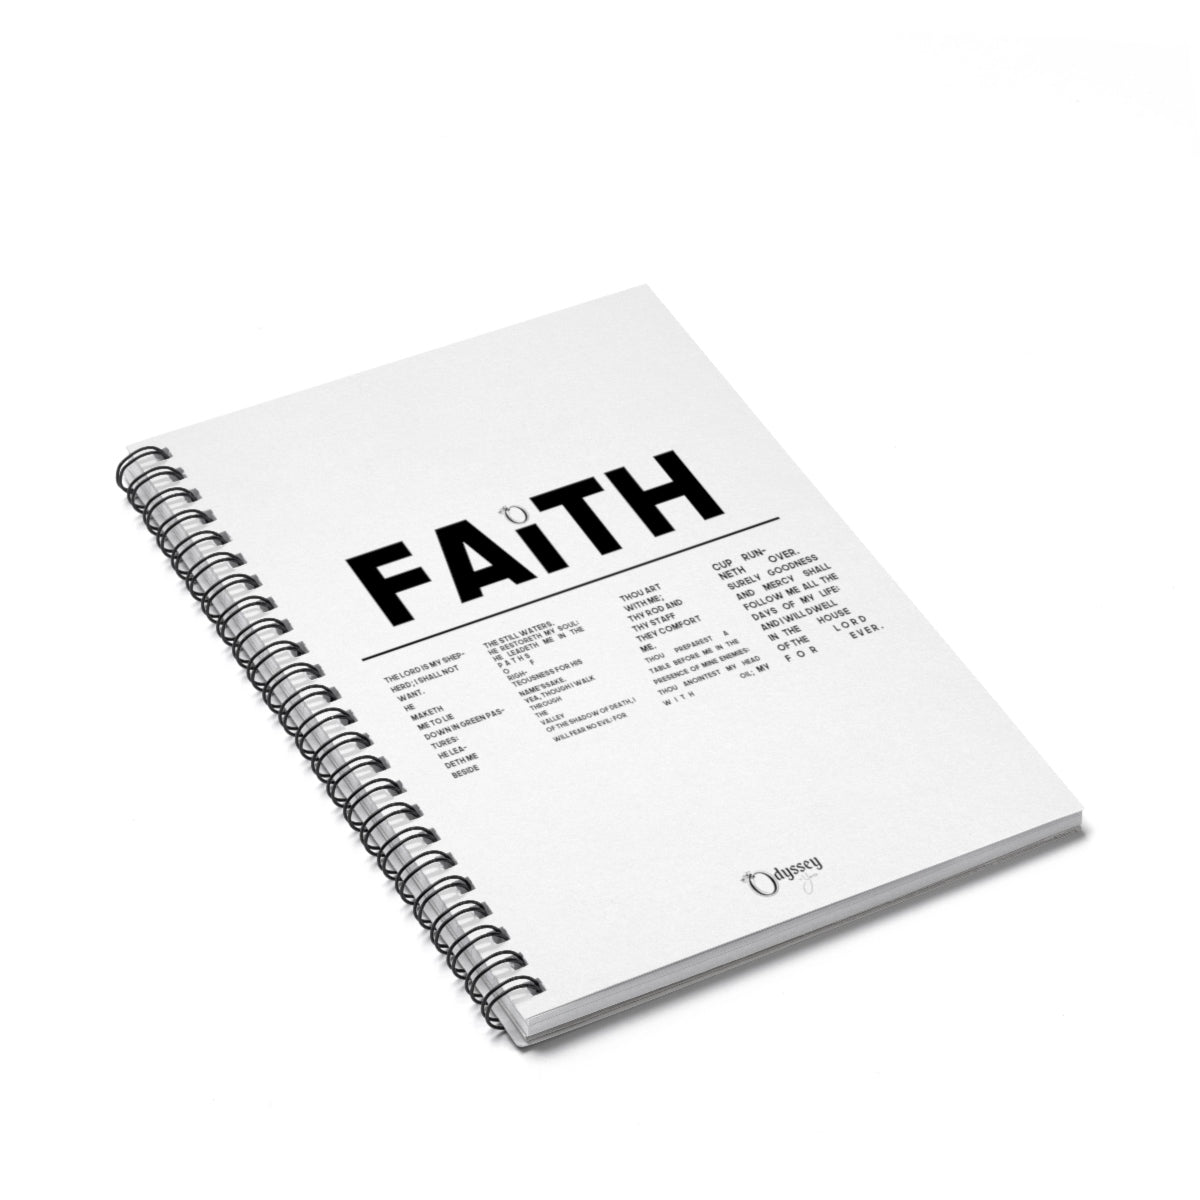 Odyssey Faith Over Fear Spiral Notebook - Paper products - Odyssey By Yendi